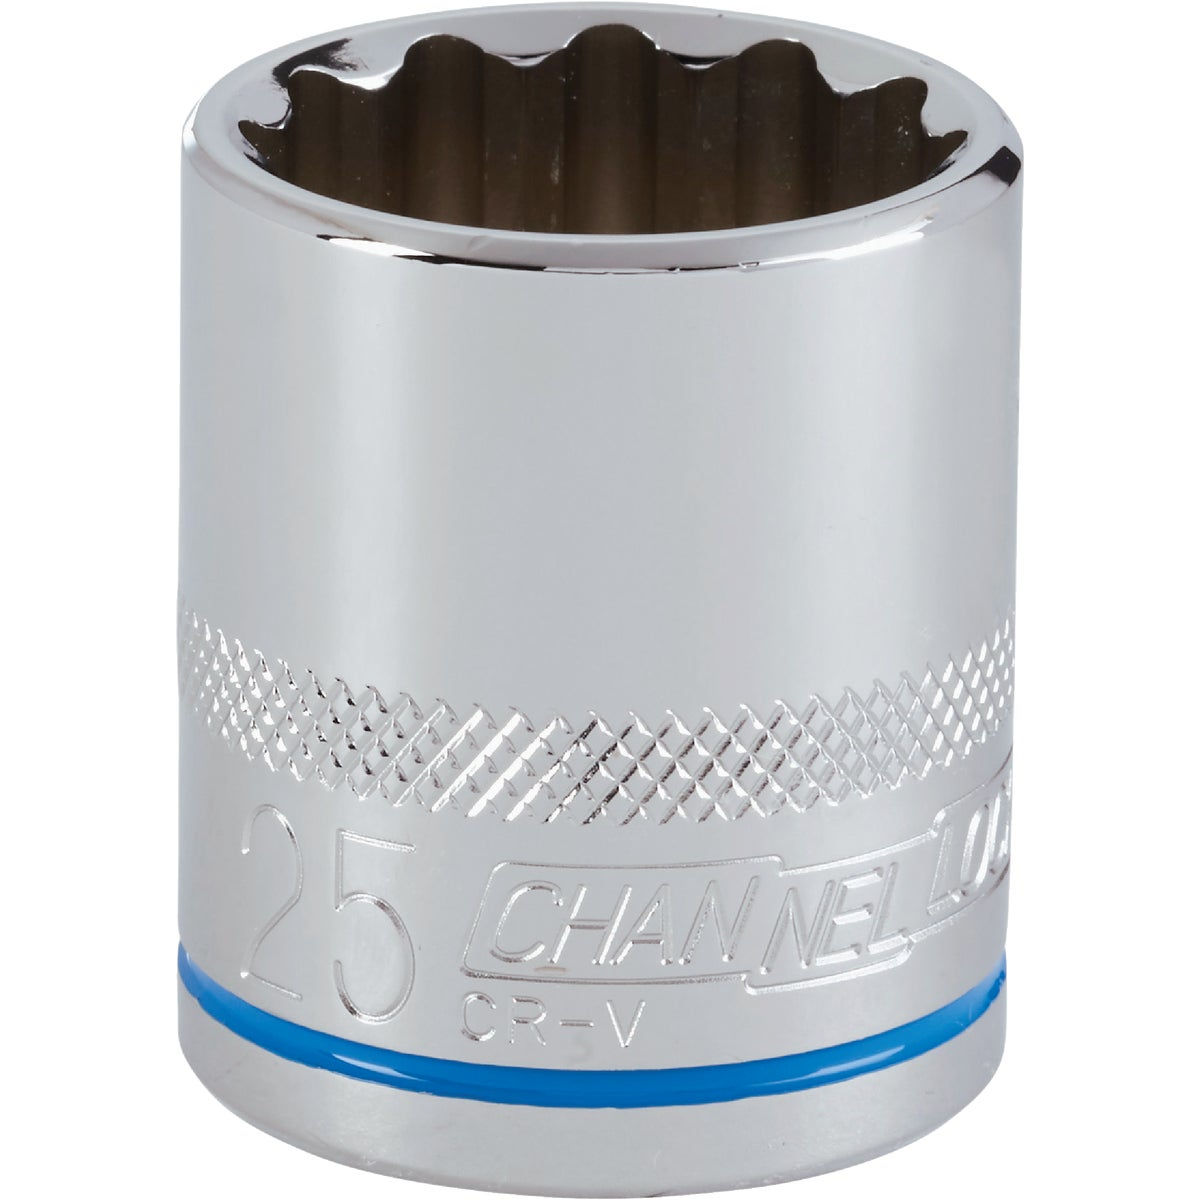 25MM 1/2 DRIVE SOCKET - 12725 by Apex Tool Group